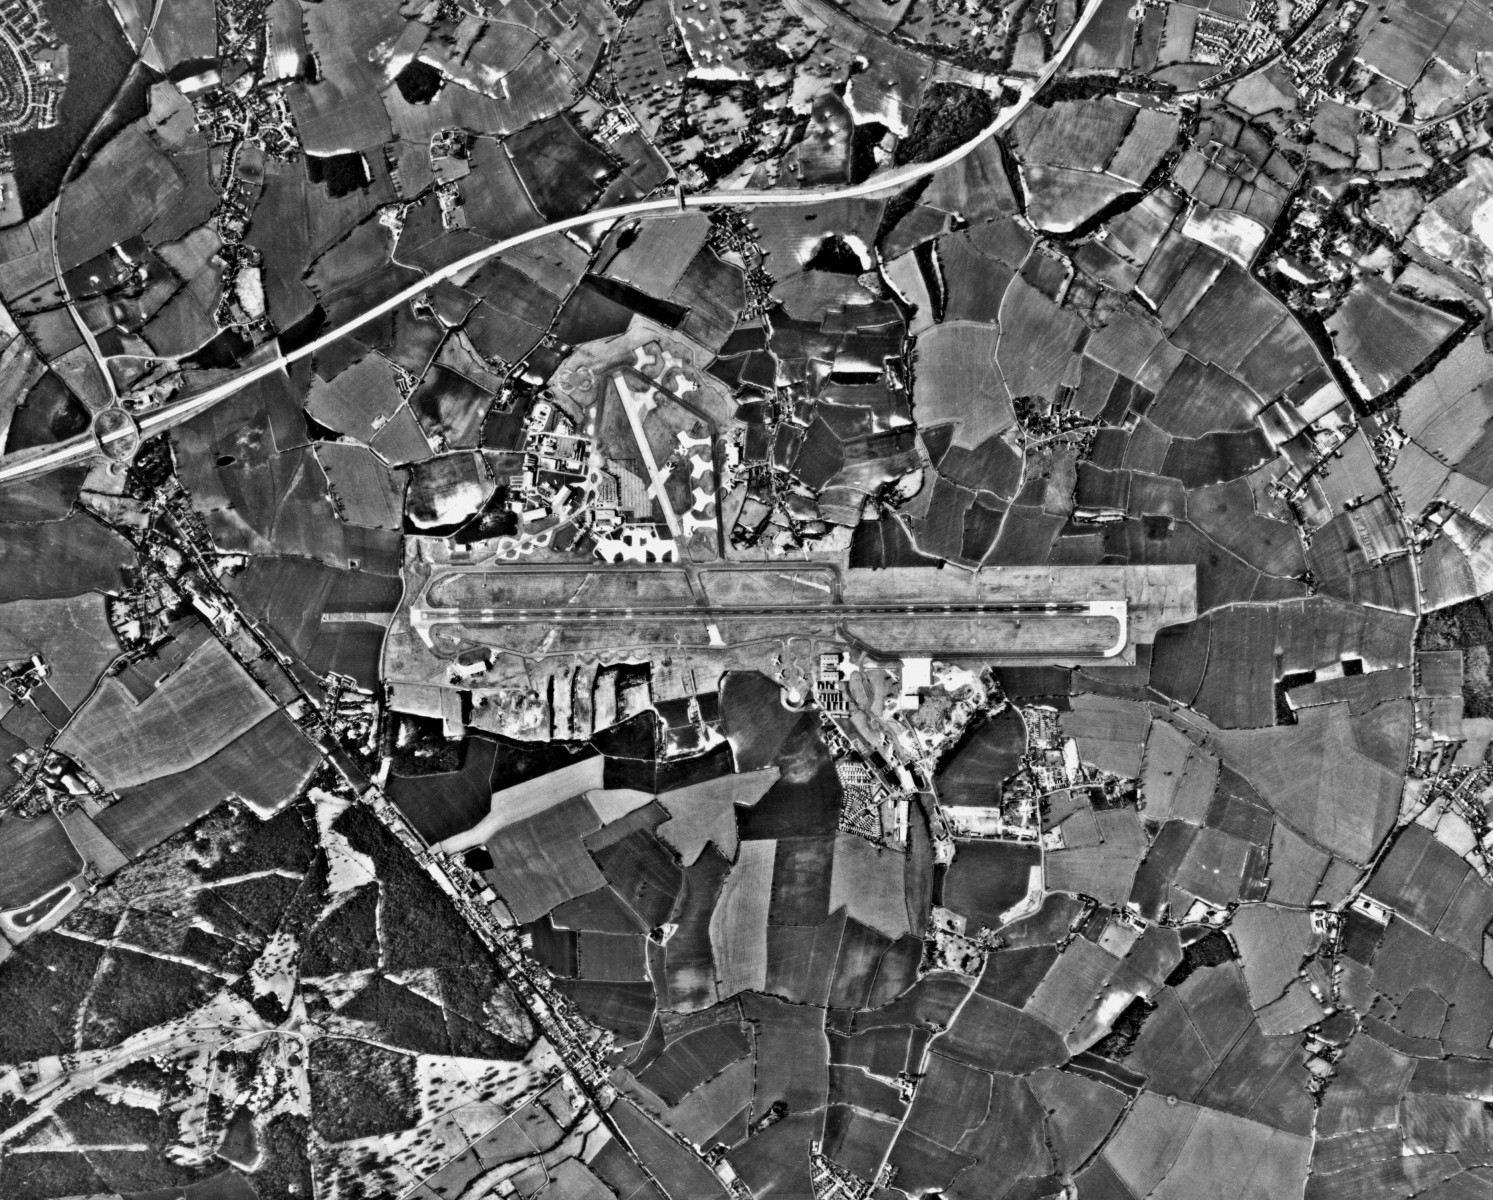 Aerial photo of the airfield from the late sixties.